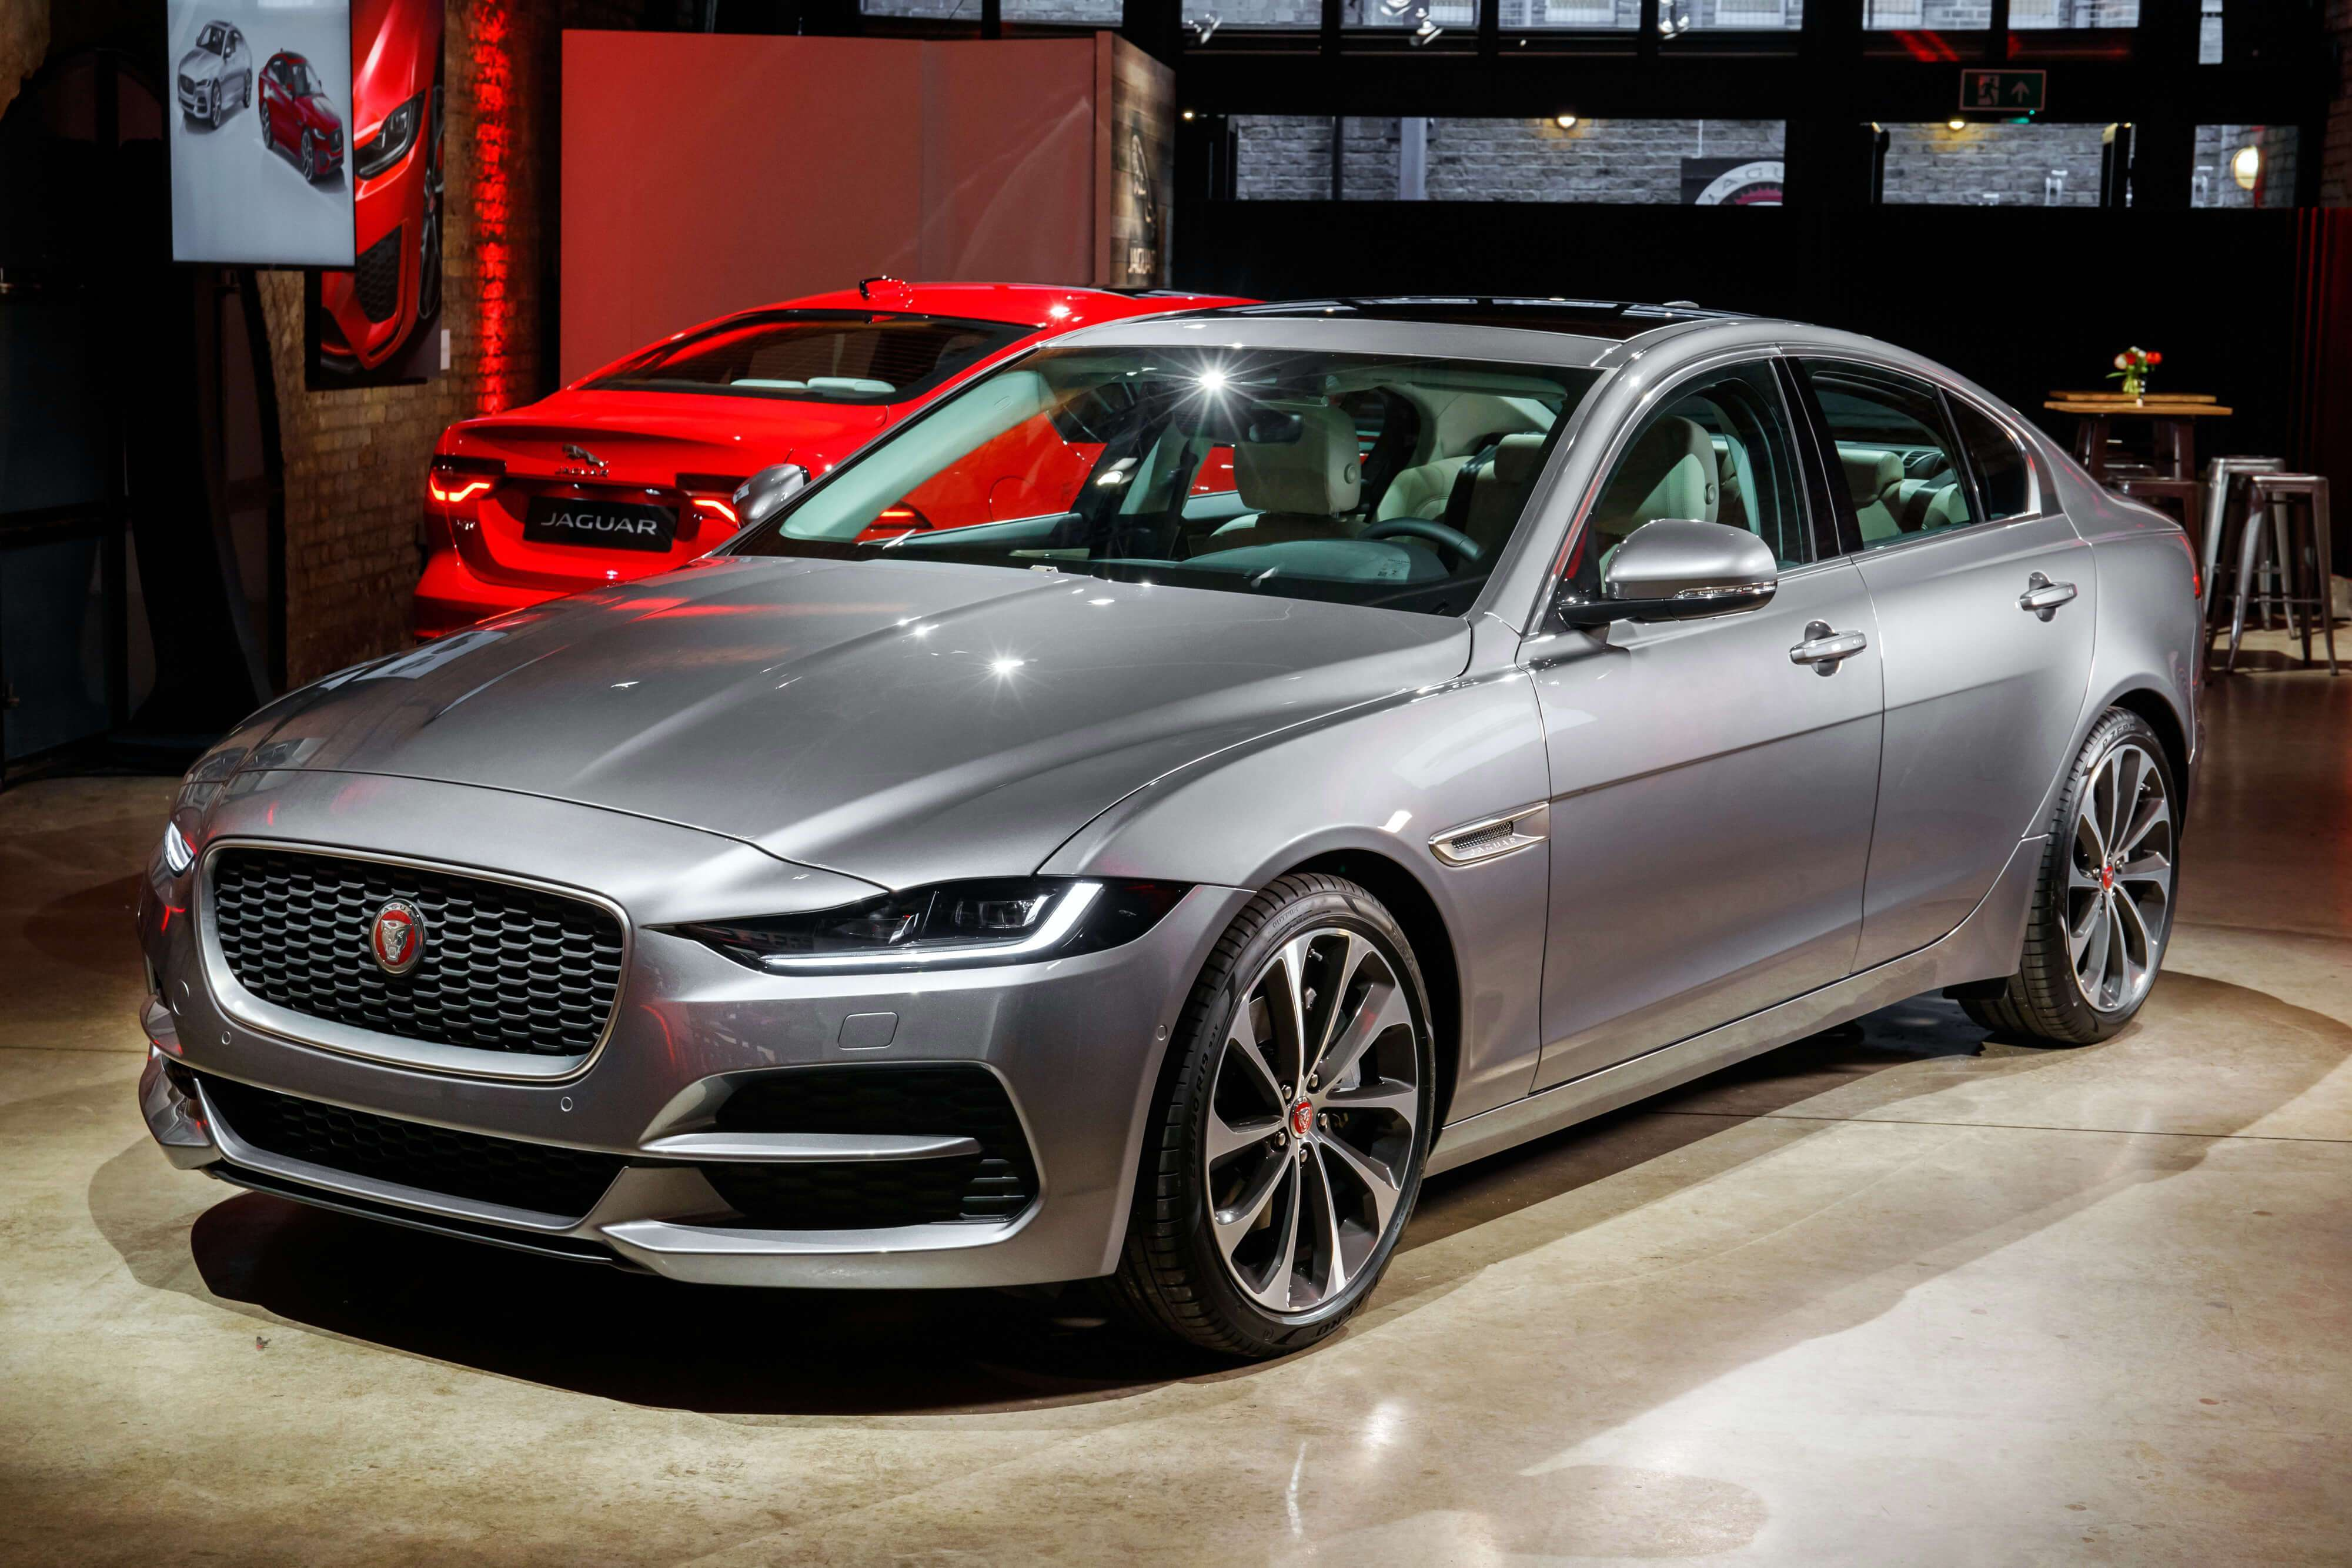 96 The 2020 All Jaguar Xe Sedan Exterior